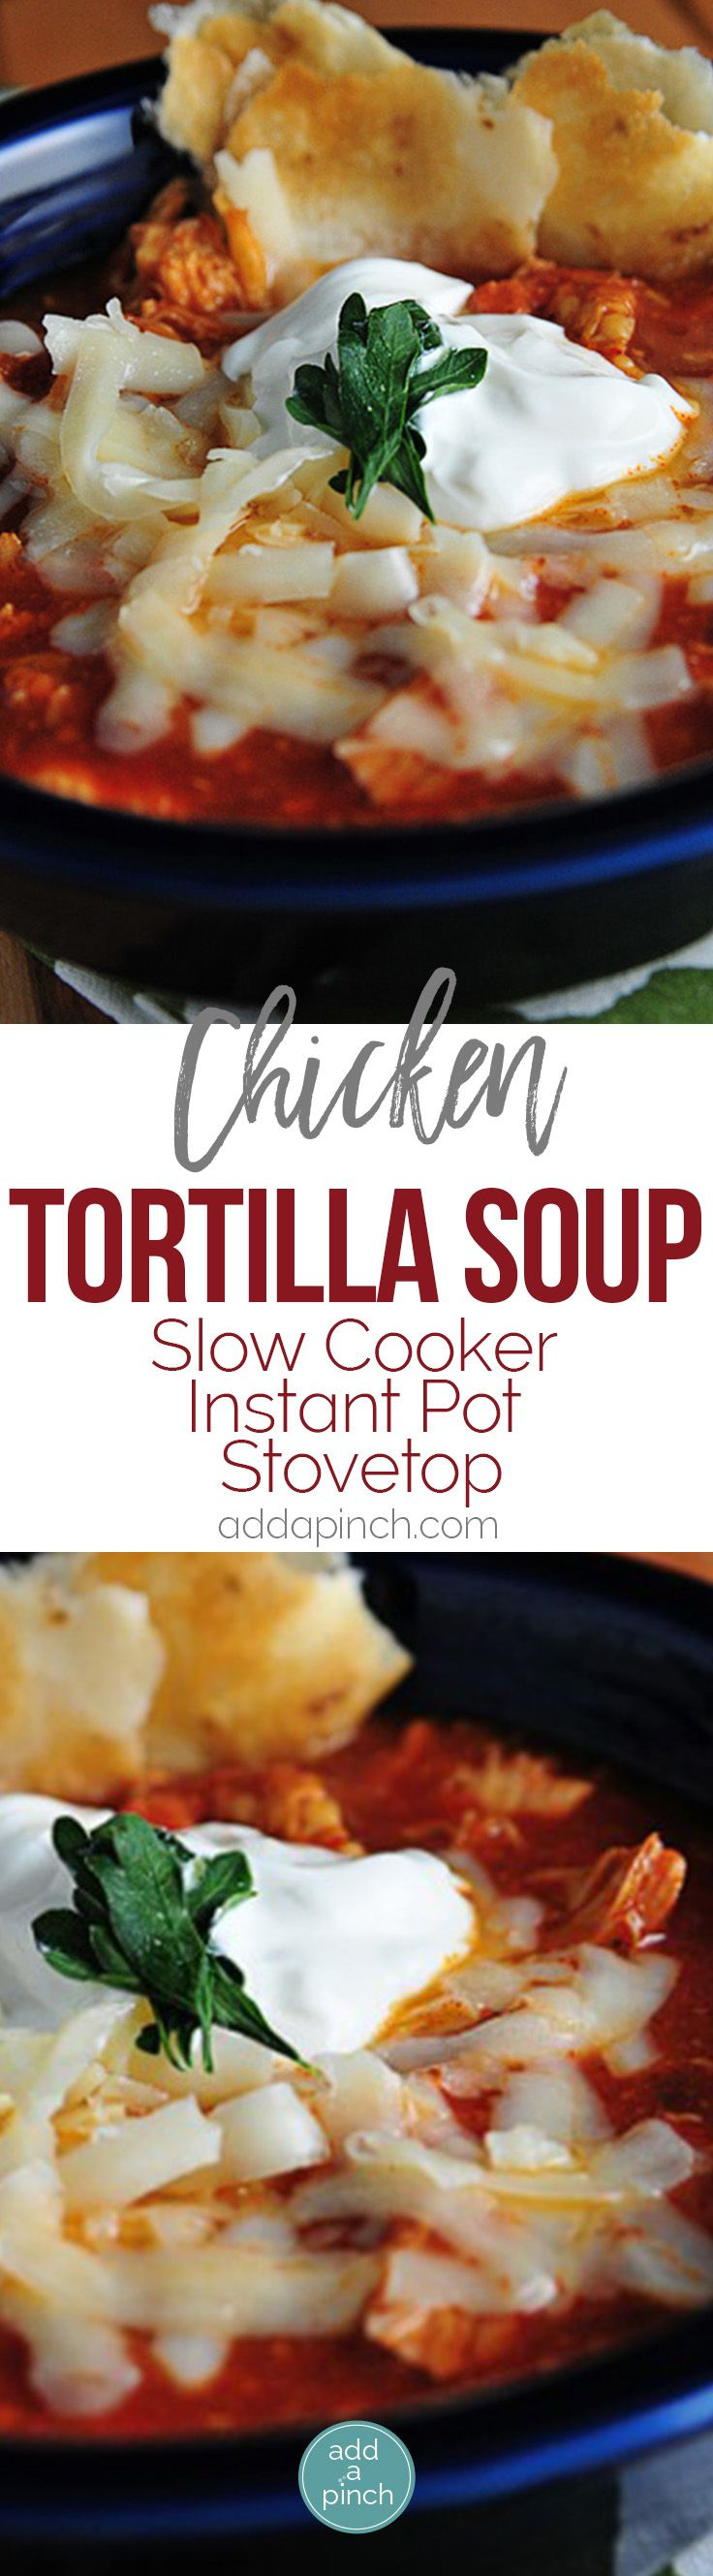 Chicken Tortilla Soup Recipe (Slow Cooker, Instant Pot, and Stovetop Instructions) - This easy Chicken Tortilla Soup makes a scrumptious soup with little effort. With slow cooker, Instant Pot and stovetop instructions included! // addapinch.com